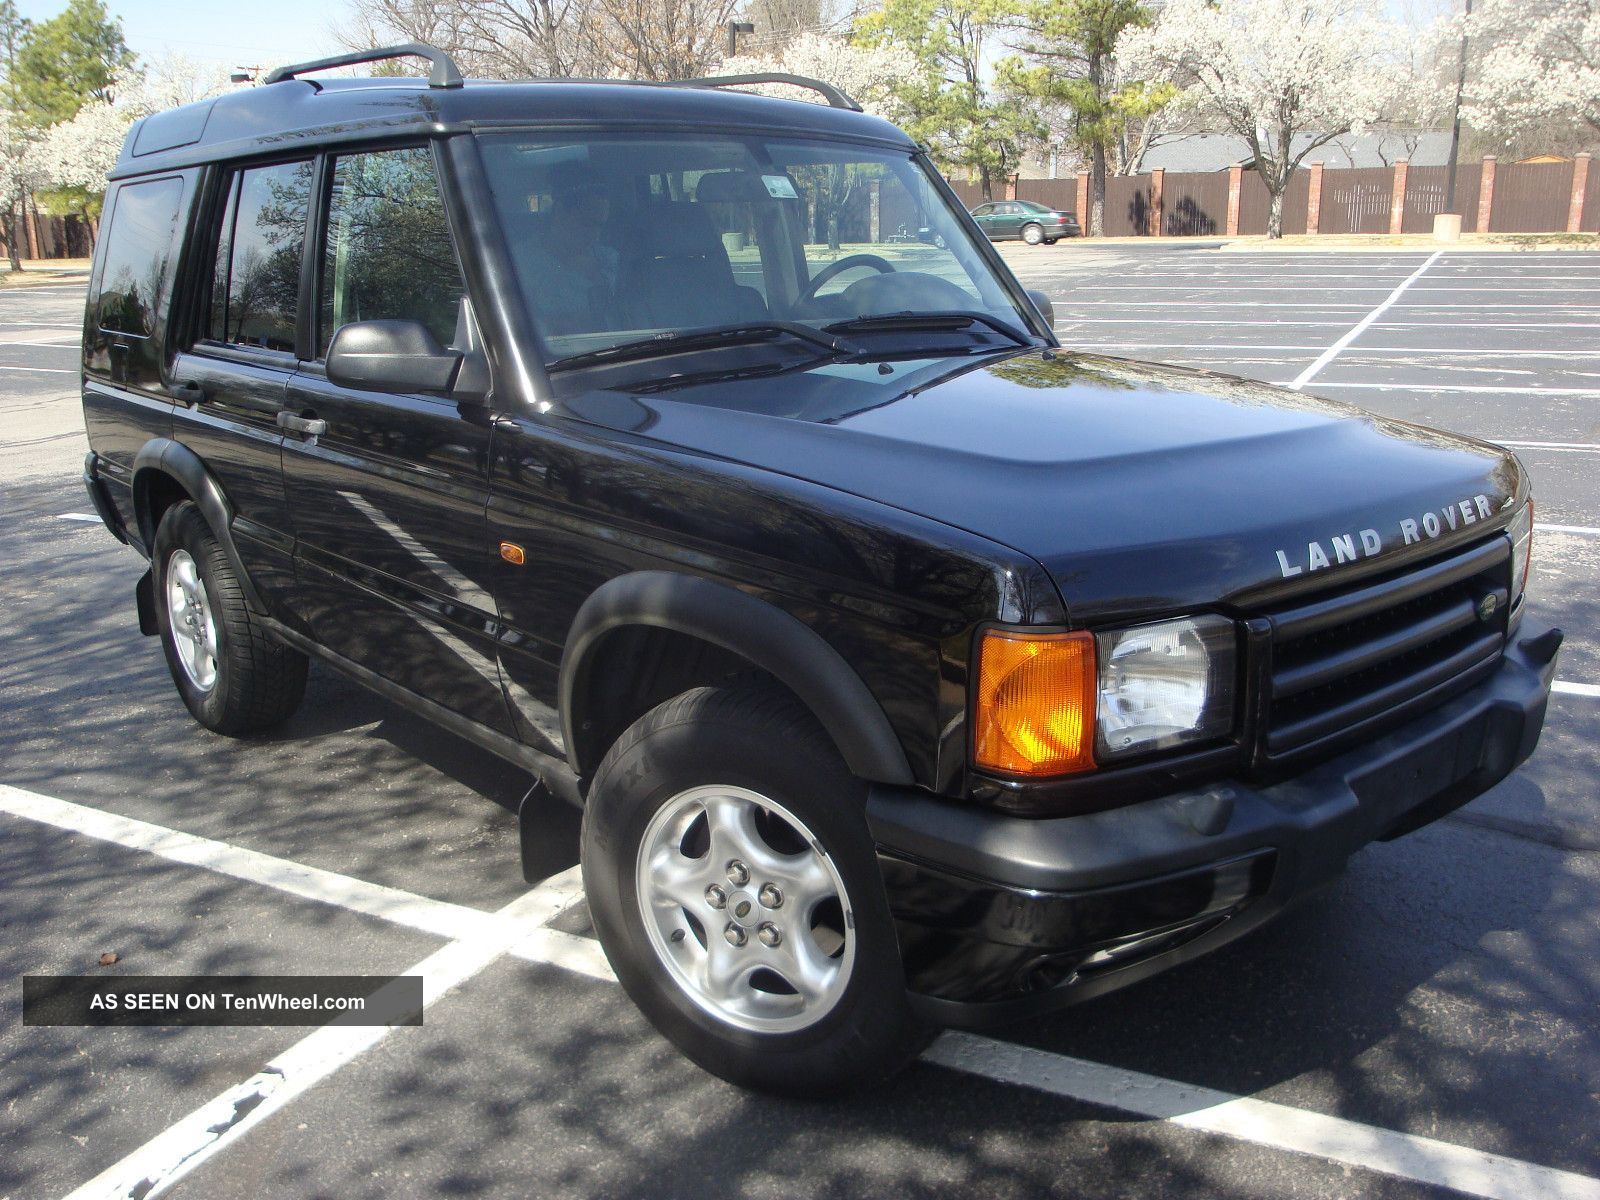 Land Rover Discovery 4.0 2000 photo - 2